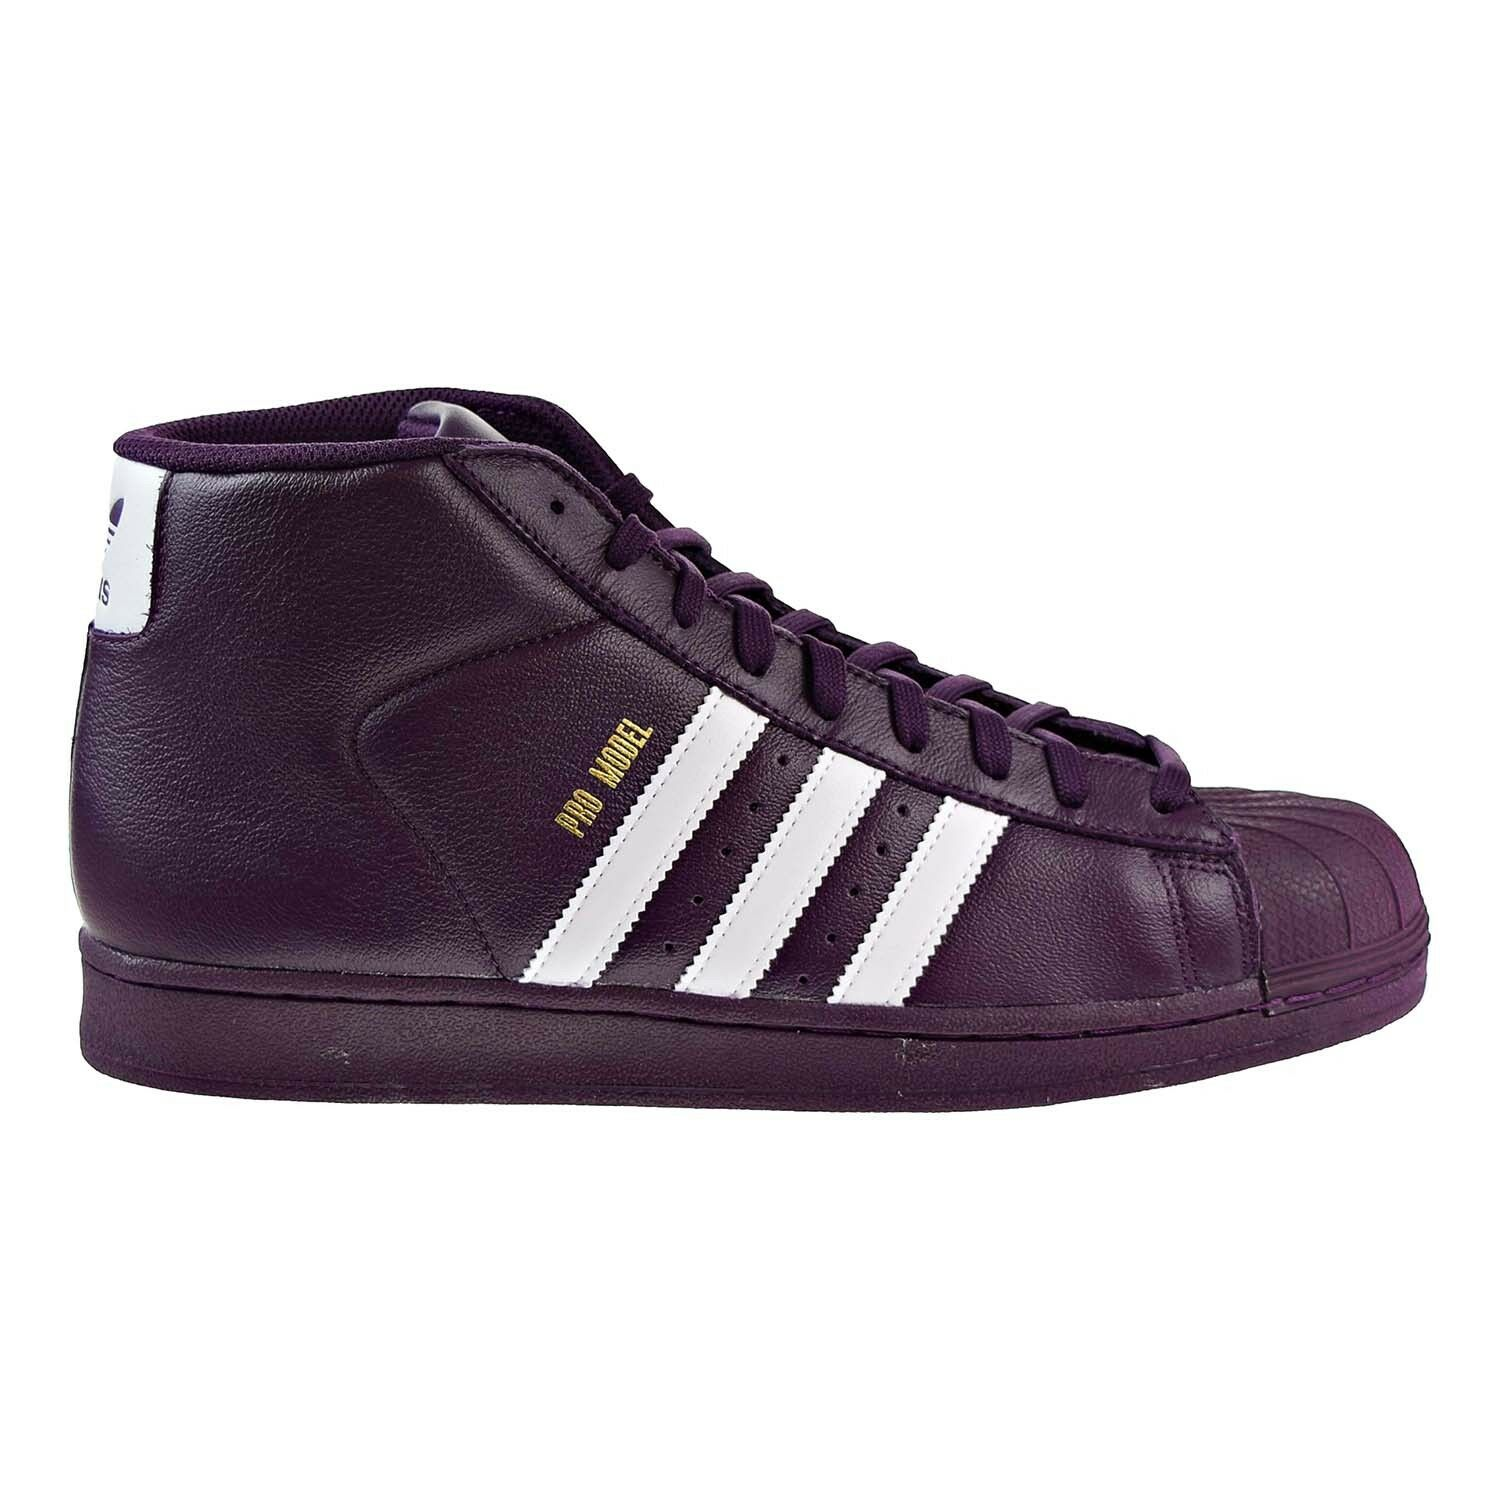 Adidas Originals Pro Model Men's Shoes Rednit/FTW White/Gold AC7646 Comfortable and good-looking